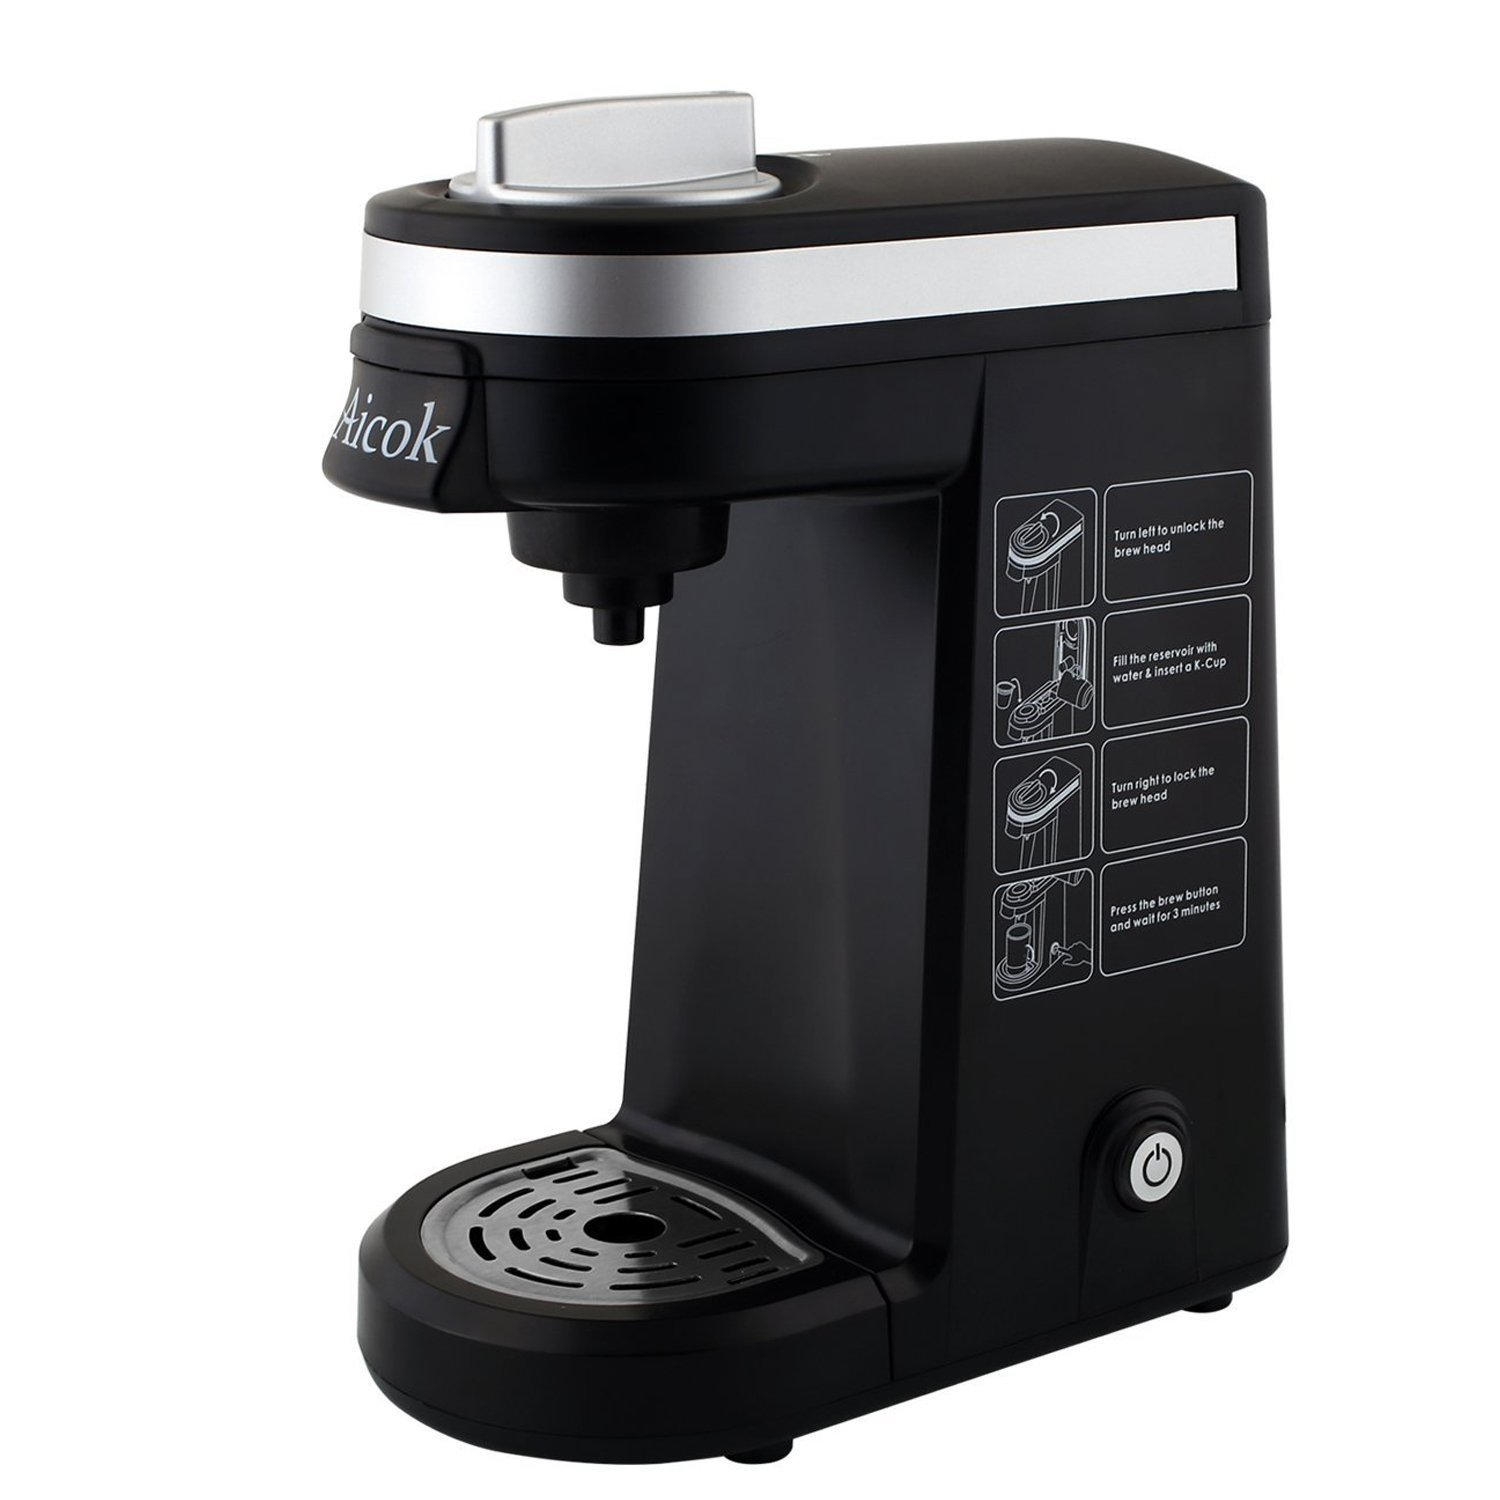 aicok kcup coffee maker single serve coffee brewer - K Cup Brewers